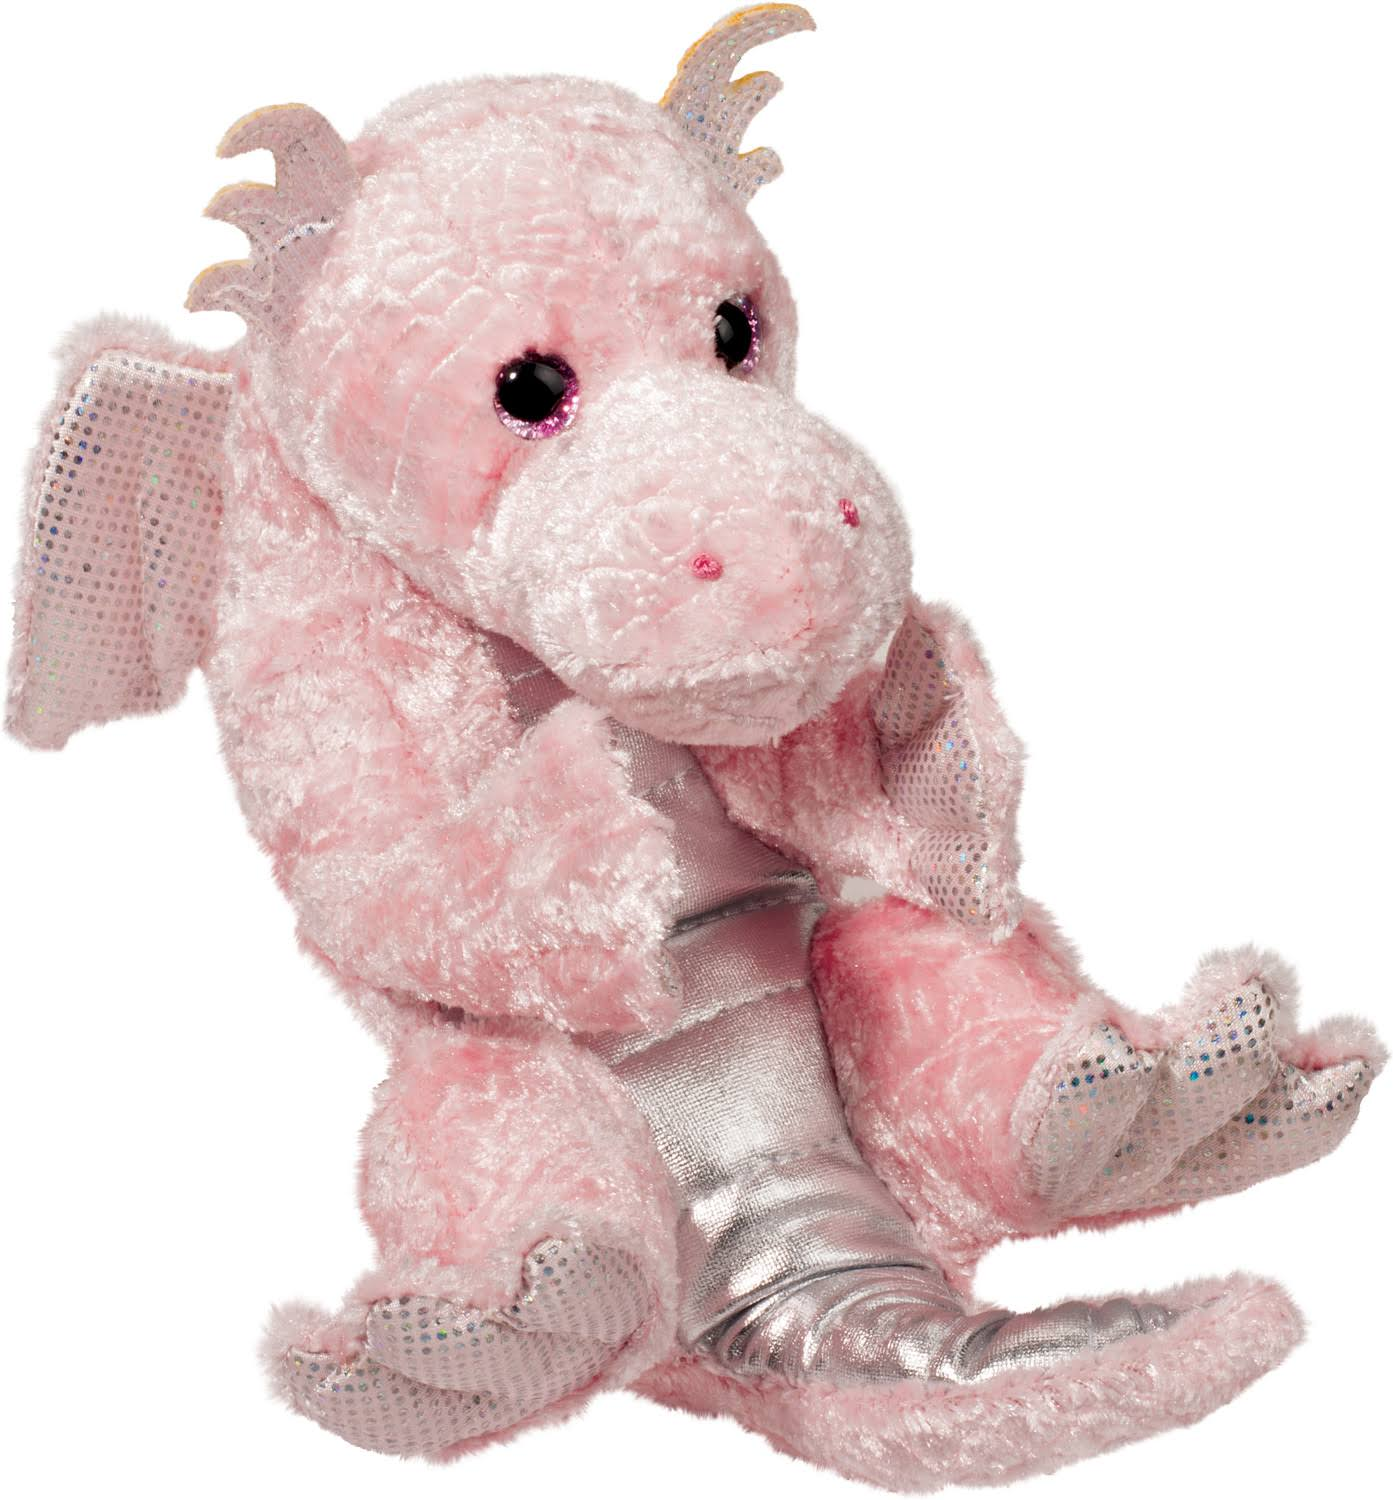 Douglas Plush Pink Dragon Lil' Handful Stuffed Animal